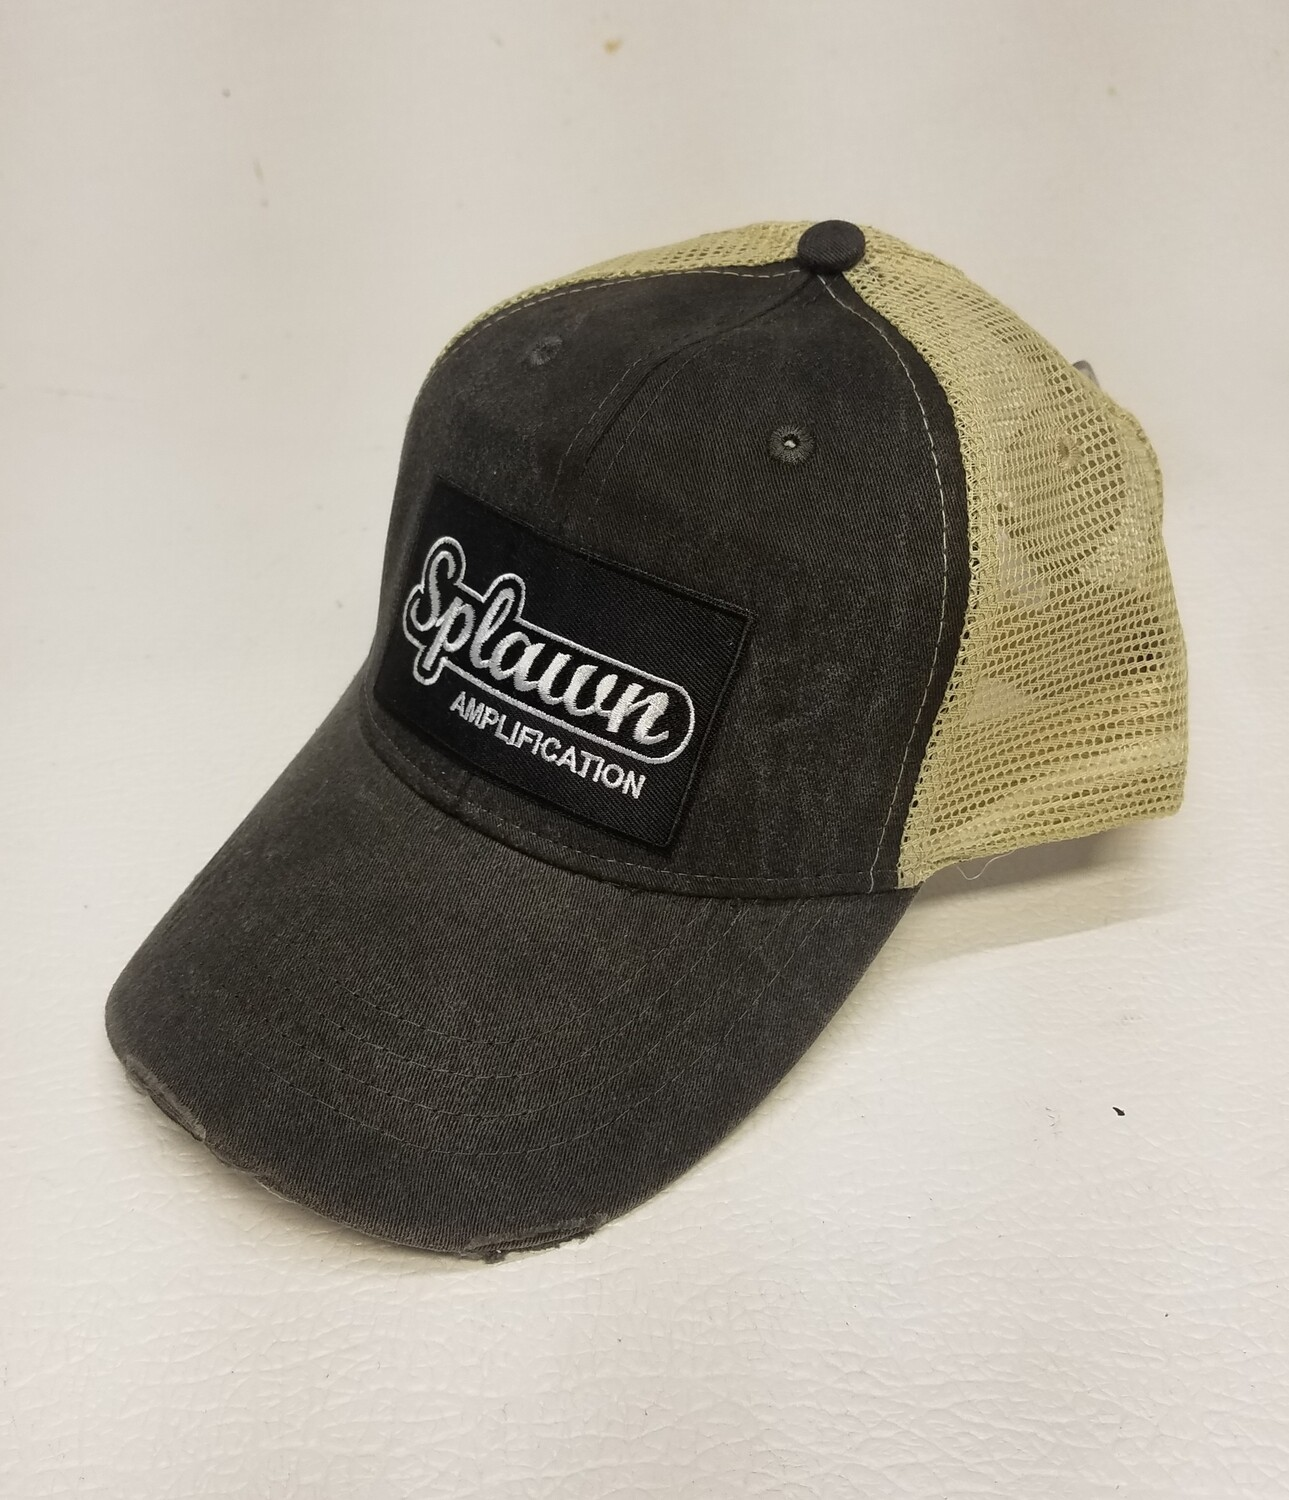 Splawn Amplification Trucker Cap Adams Black with Tan Mesh Vintage Logo